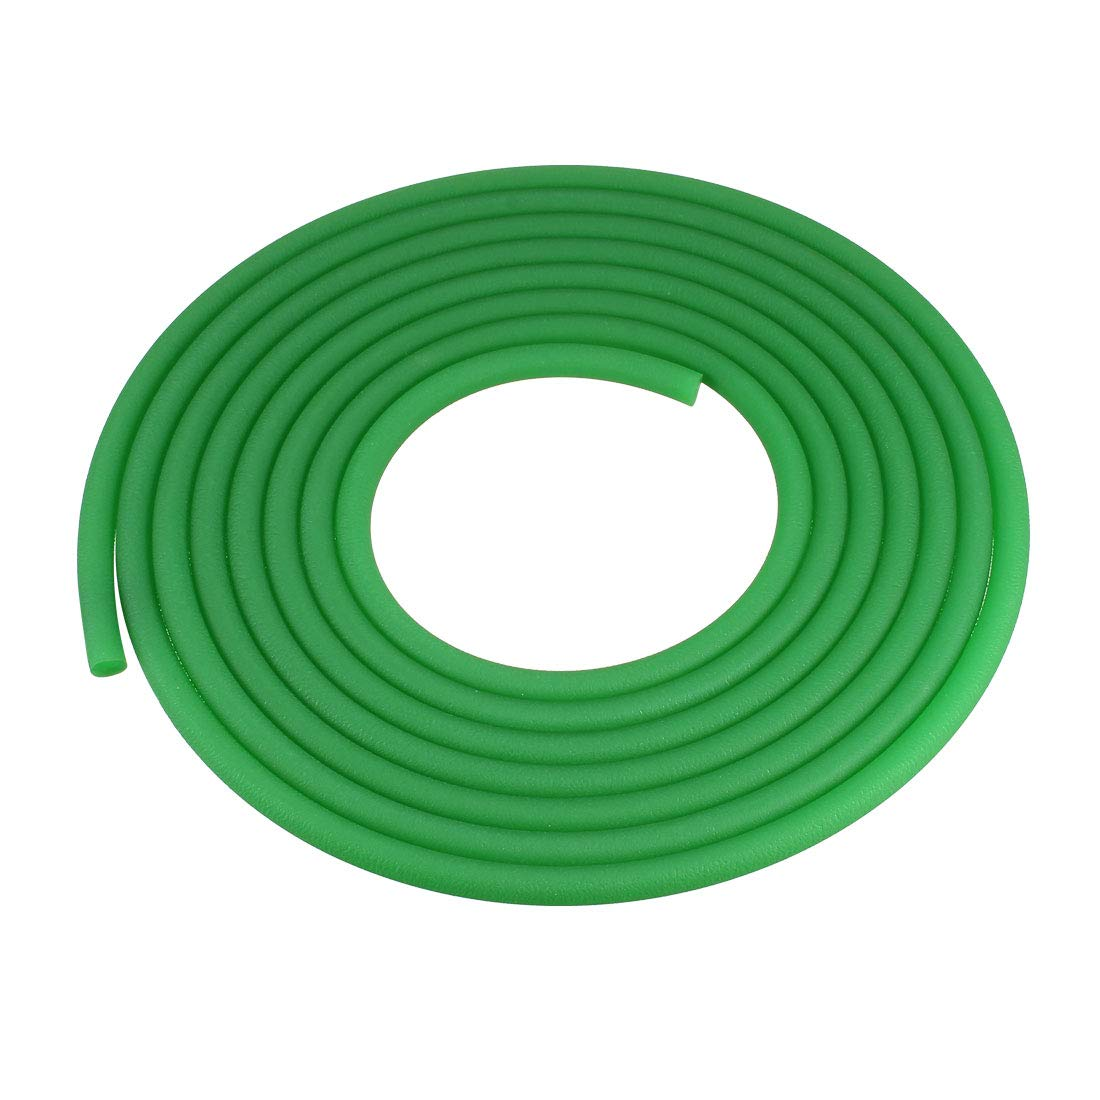 New York Mall uxcell 10ft Max 72% OFF 7mm PU Transmission High-Performance Belt Round Uret